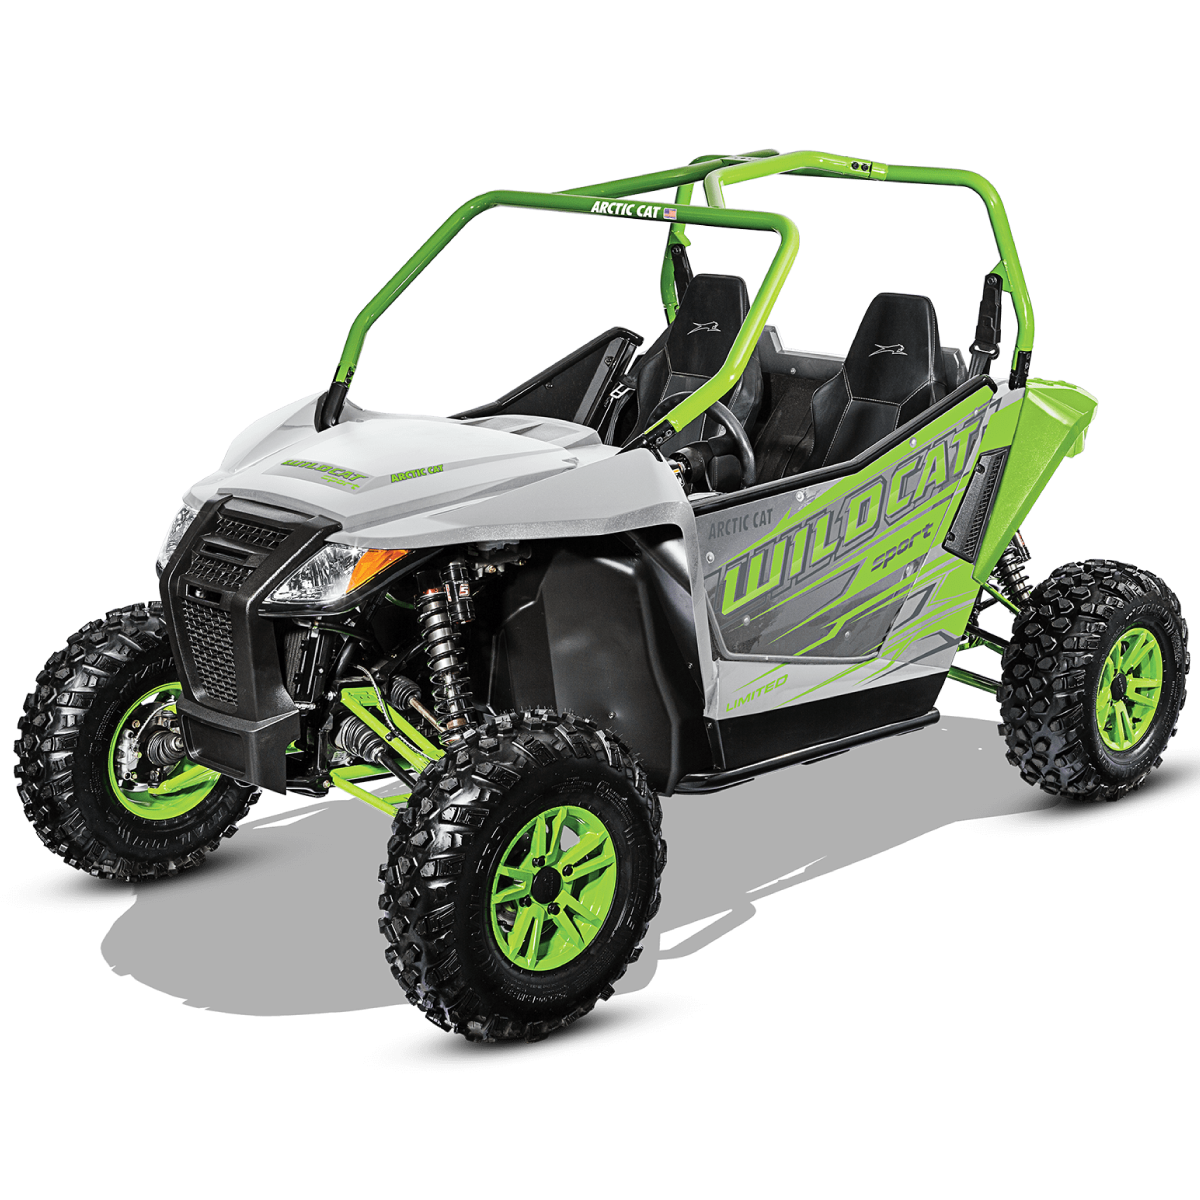 2018 Arctic Cat Wildcat Release Date >> Small Engine Big Horsepower | 2017, 2018, 2019 Ford Price, Release Date, Reviews